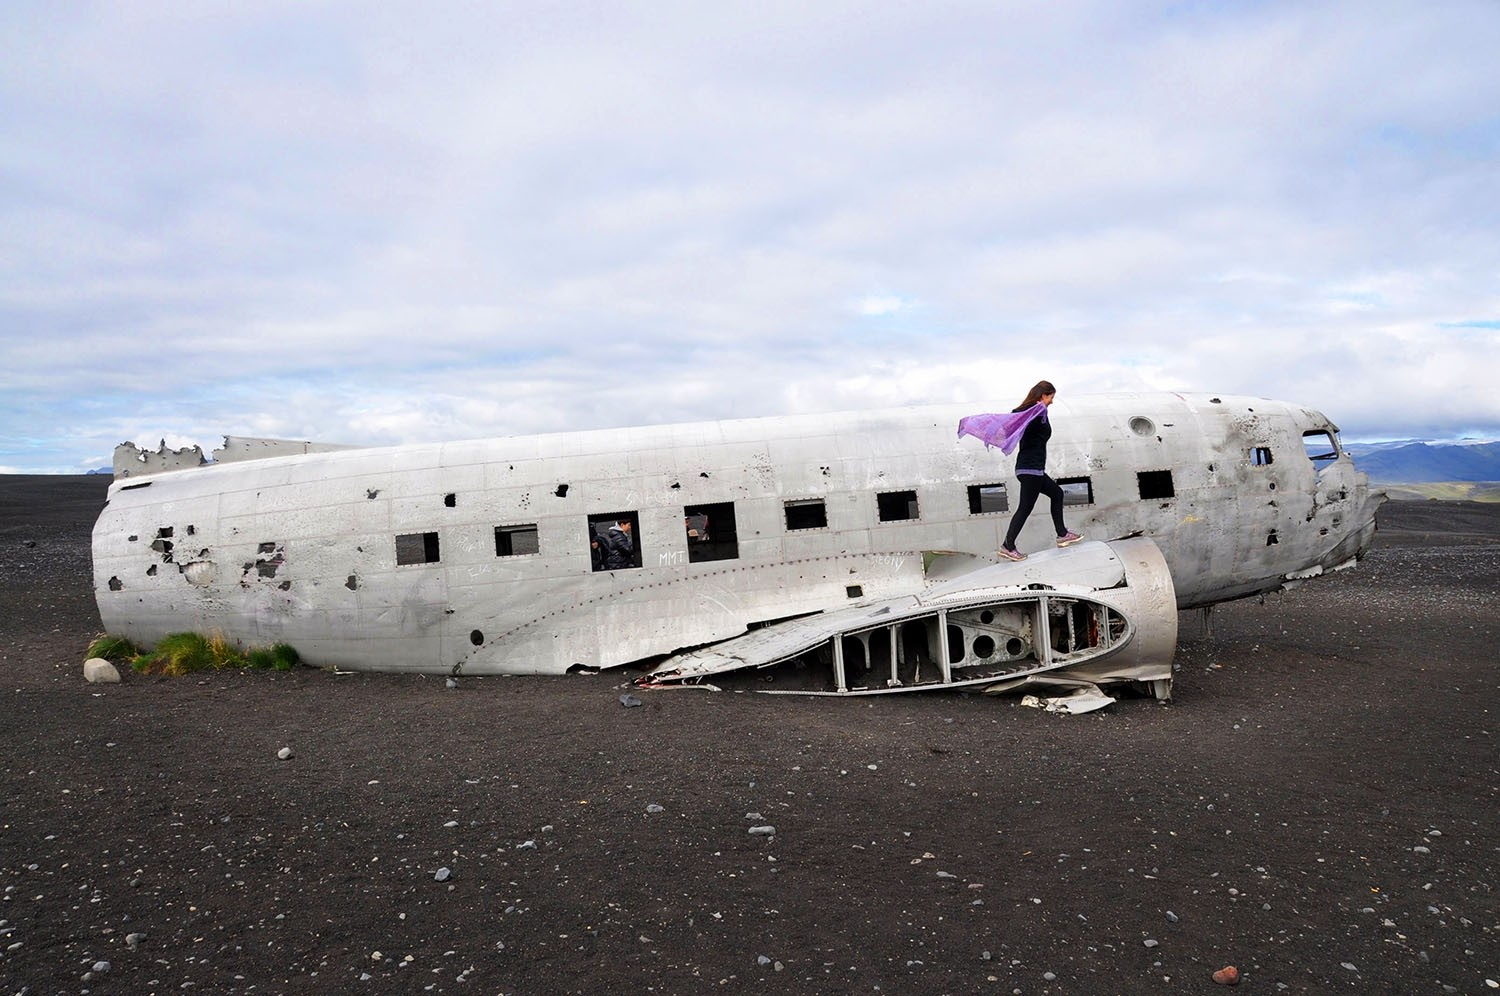 Airplane wreck Iceland